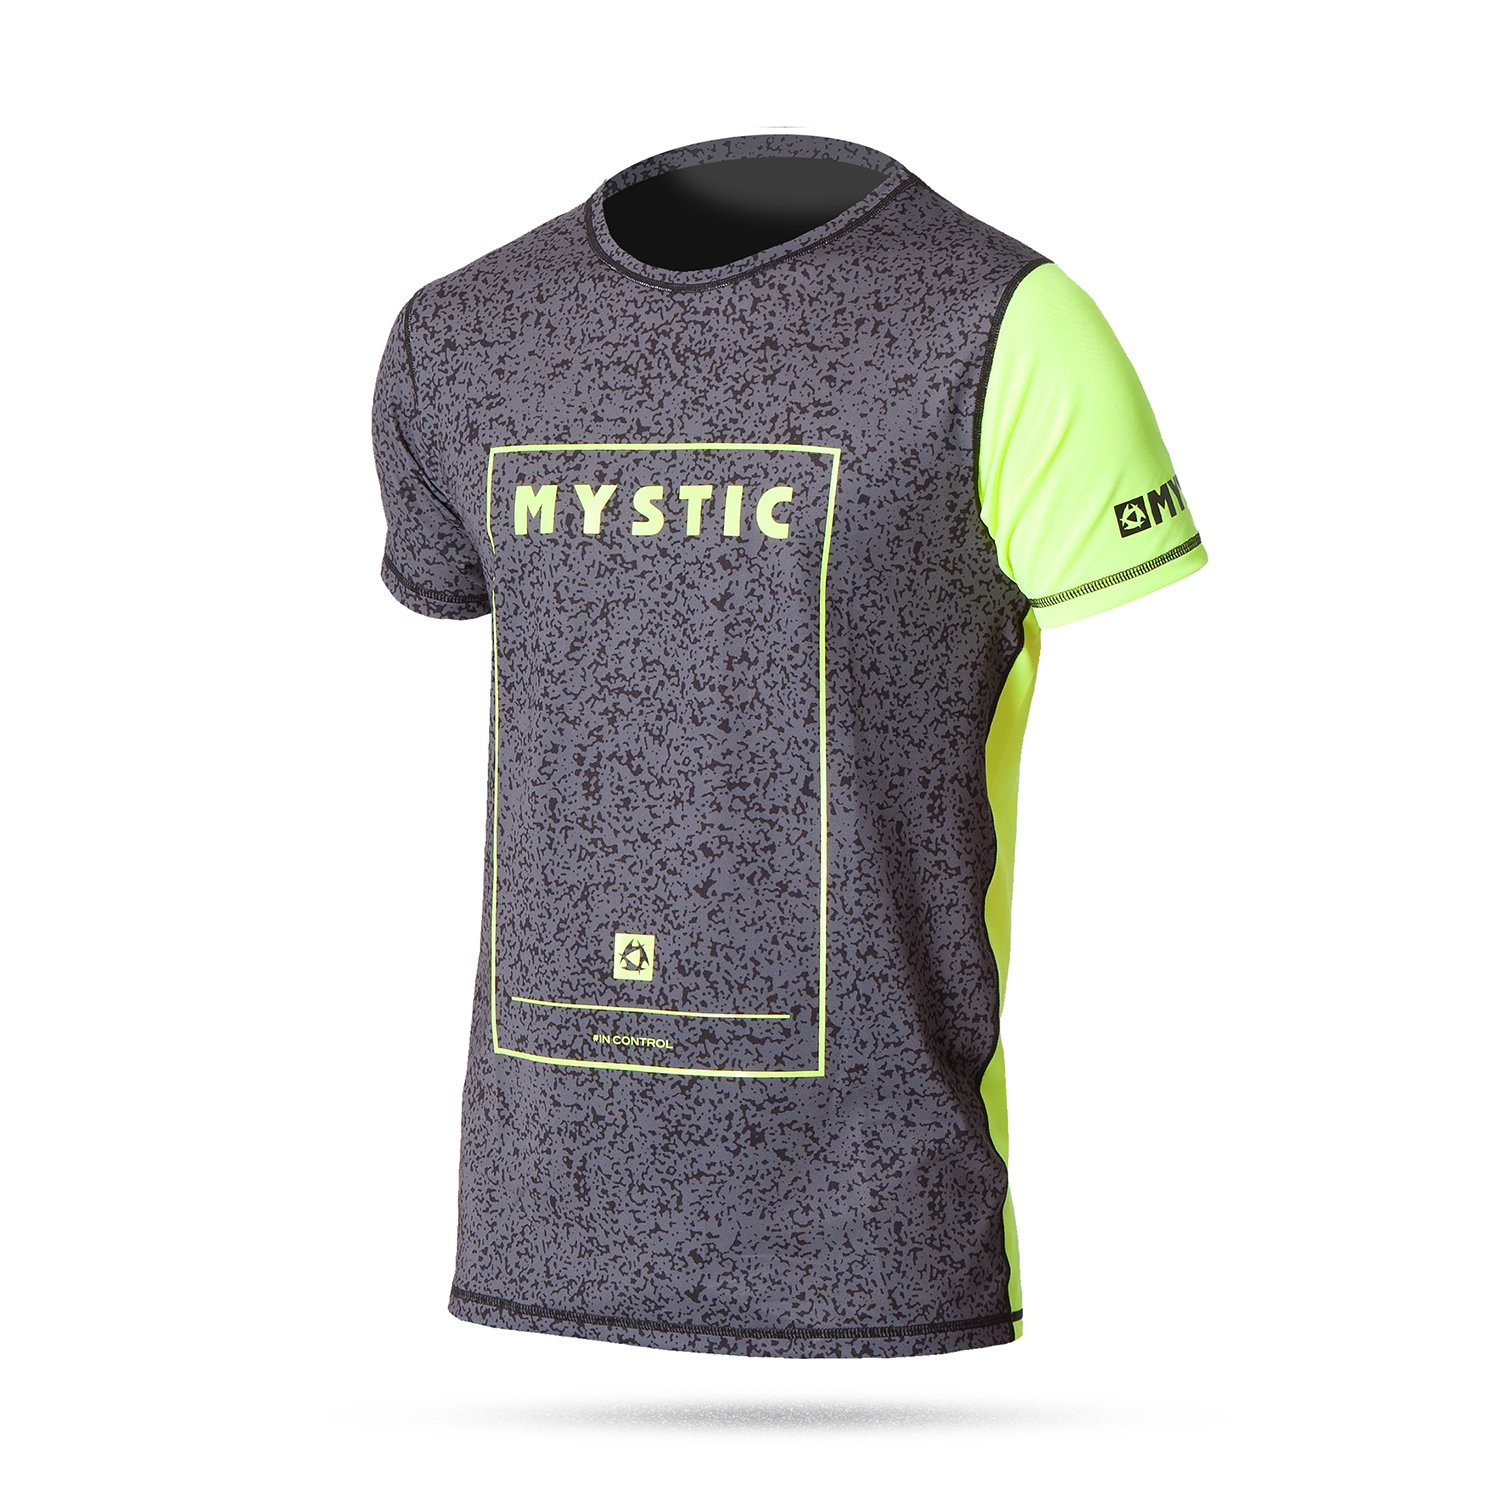 Mystic Block SS Quick Dry Tee in Yellow - ATBShop.co.uk 6f3273d44bc